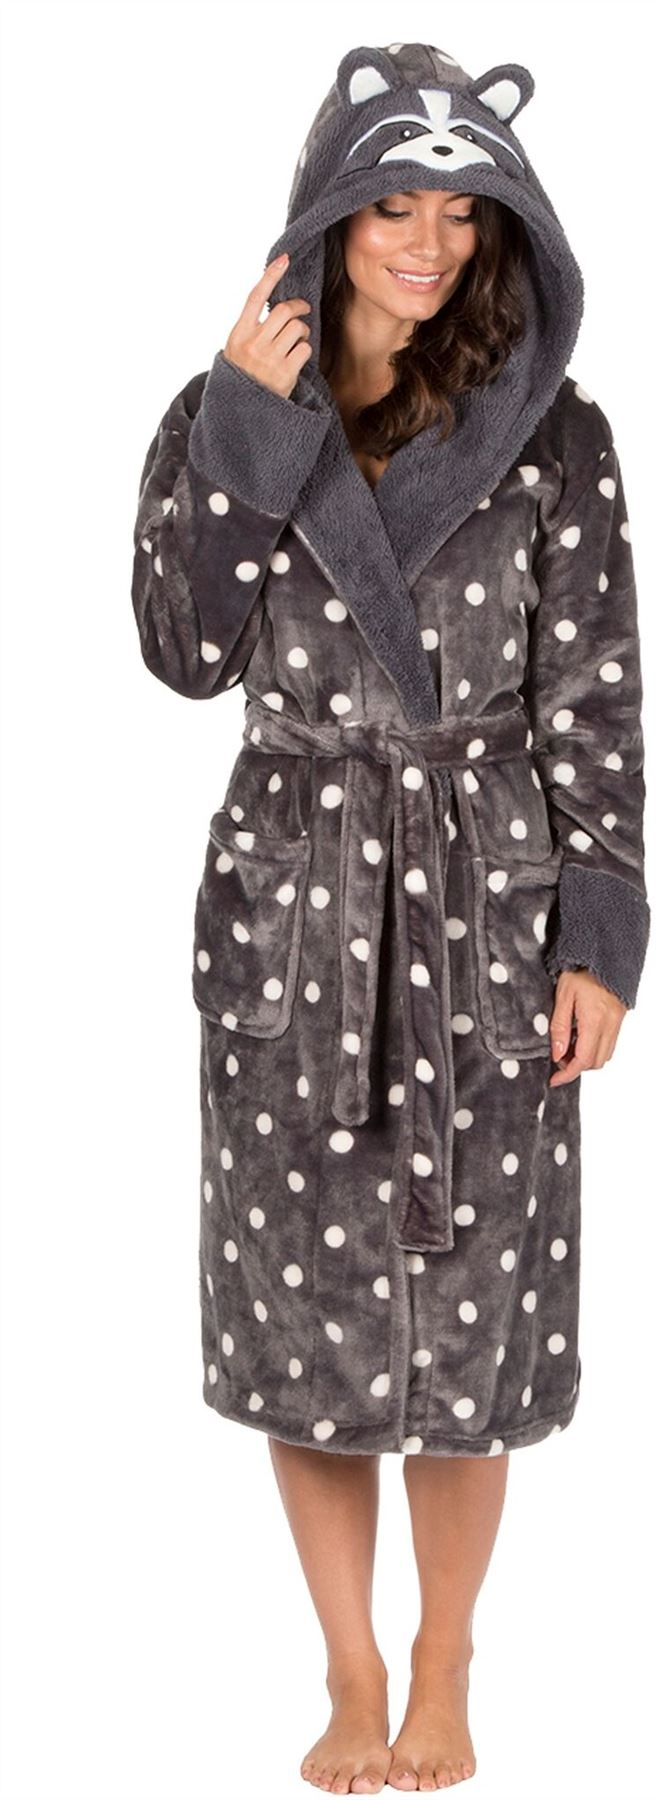 Womens Animal Hooded Coral Fleece Dressing Gown Robe Wrap Bathrobe ...